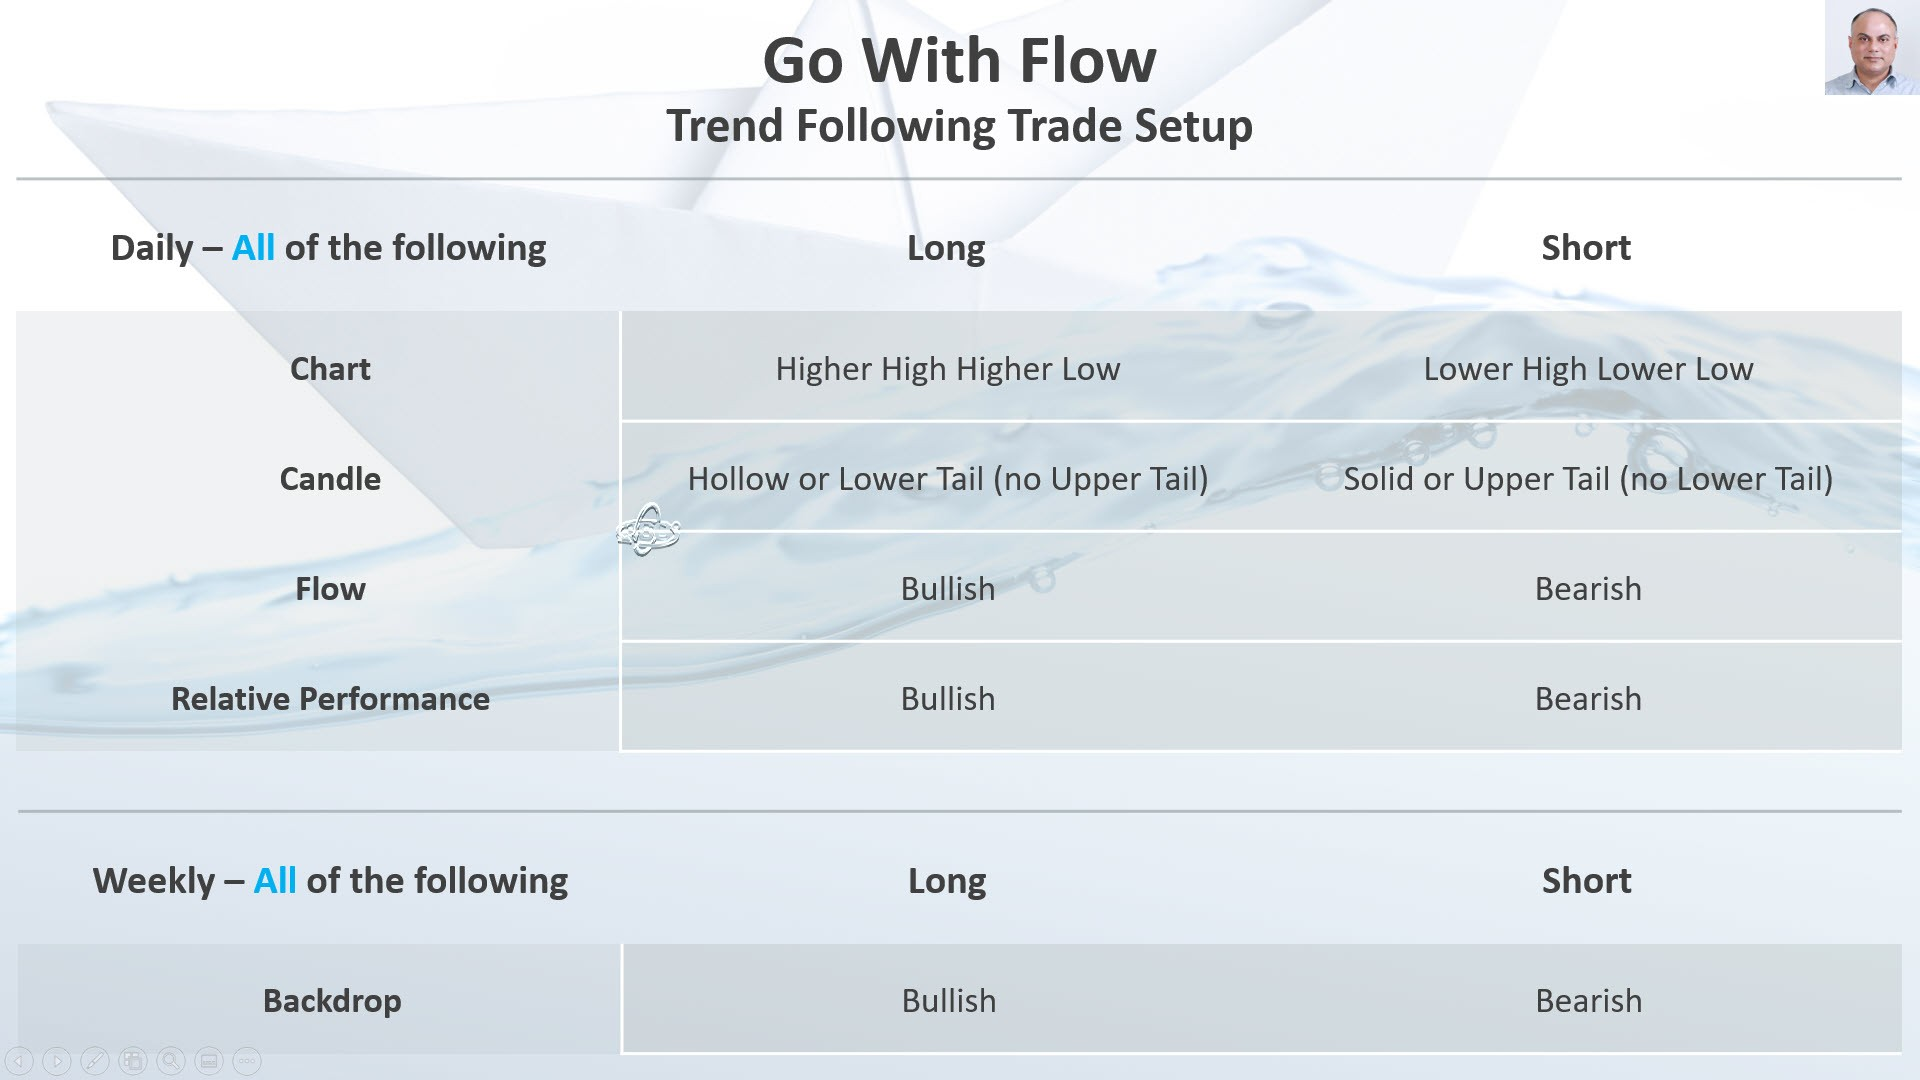 go with flow checklist.jpg